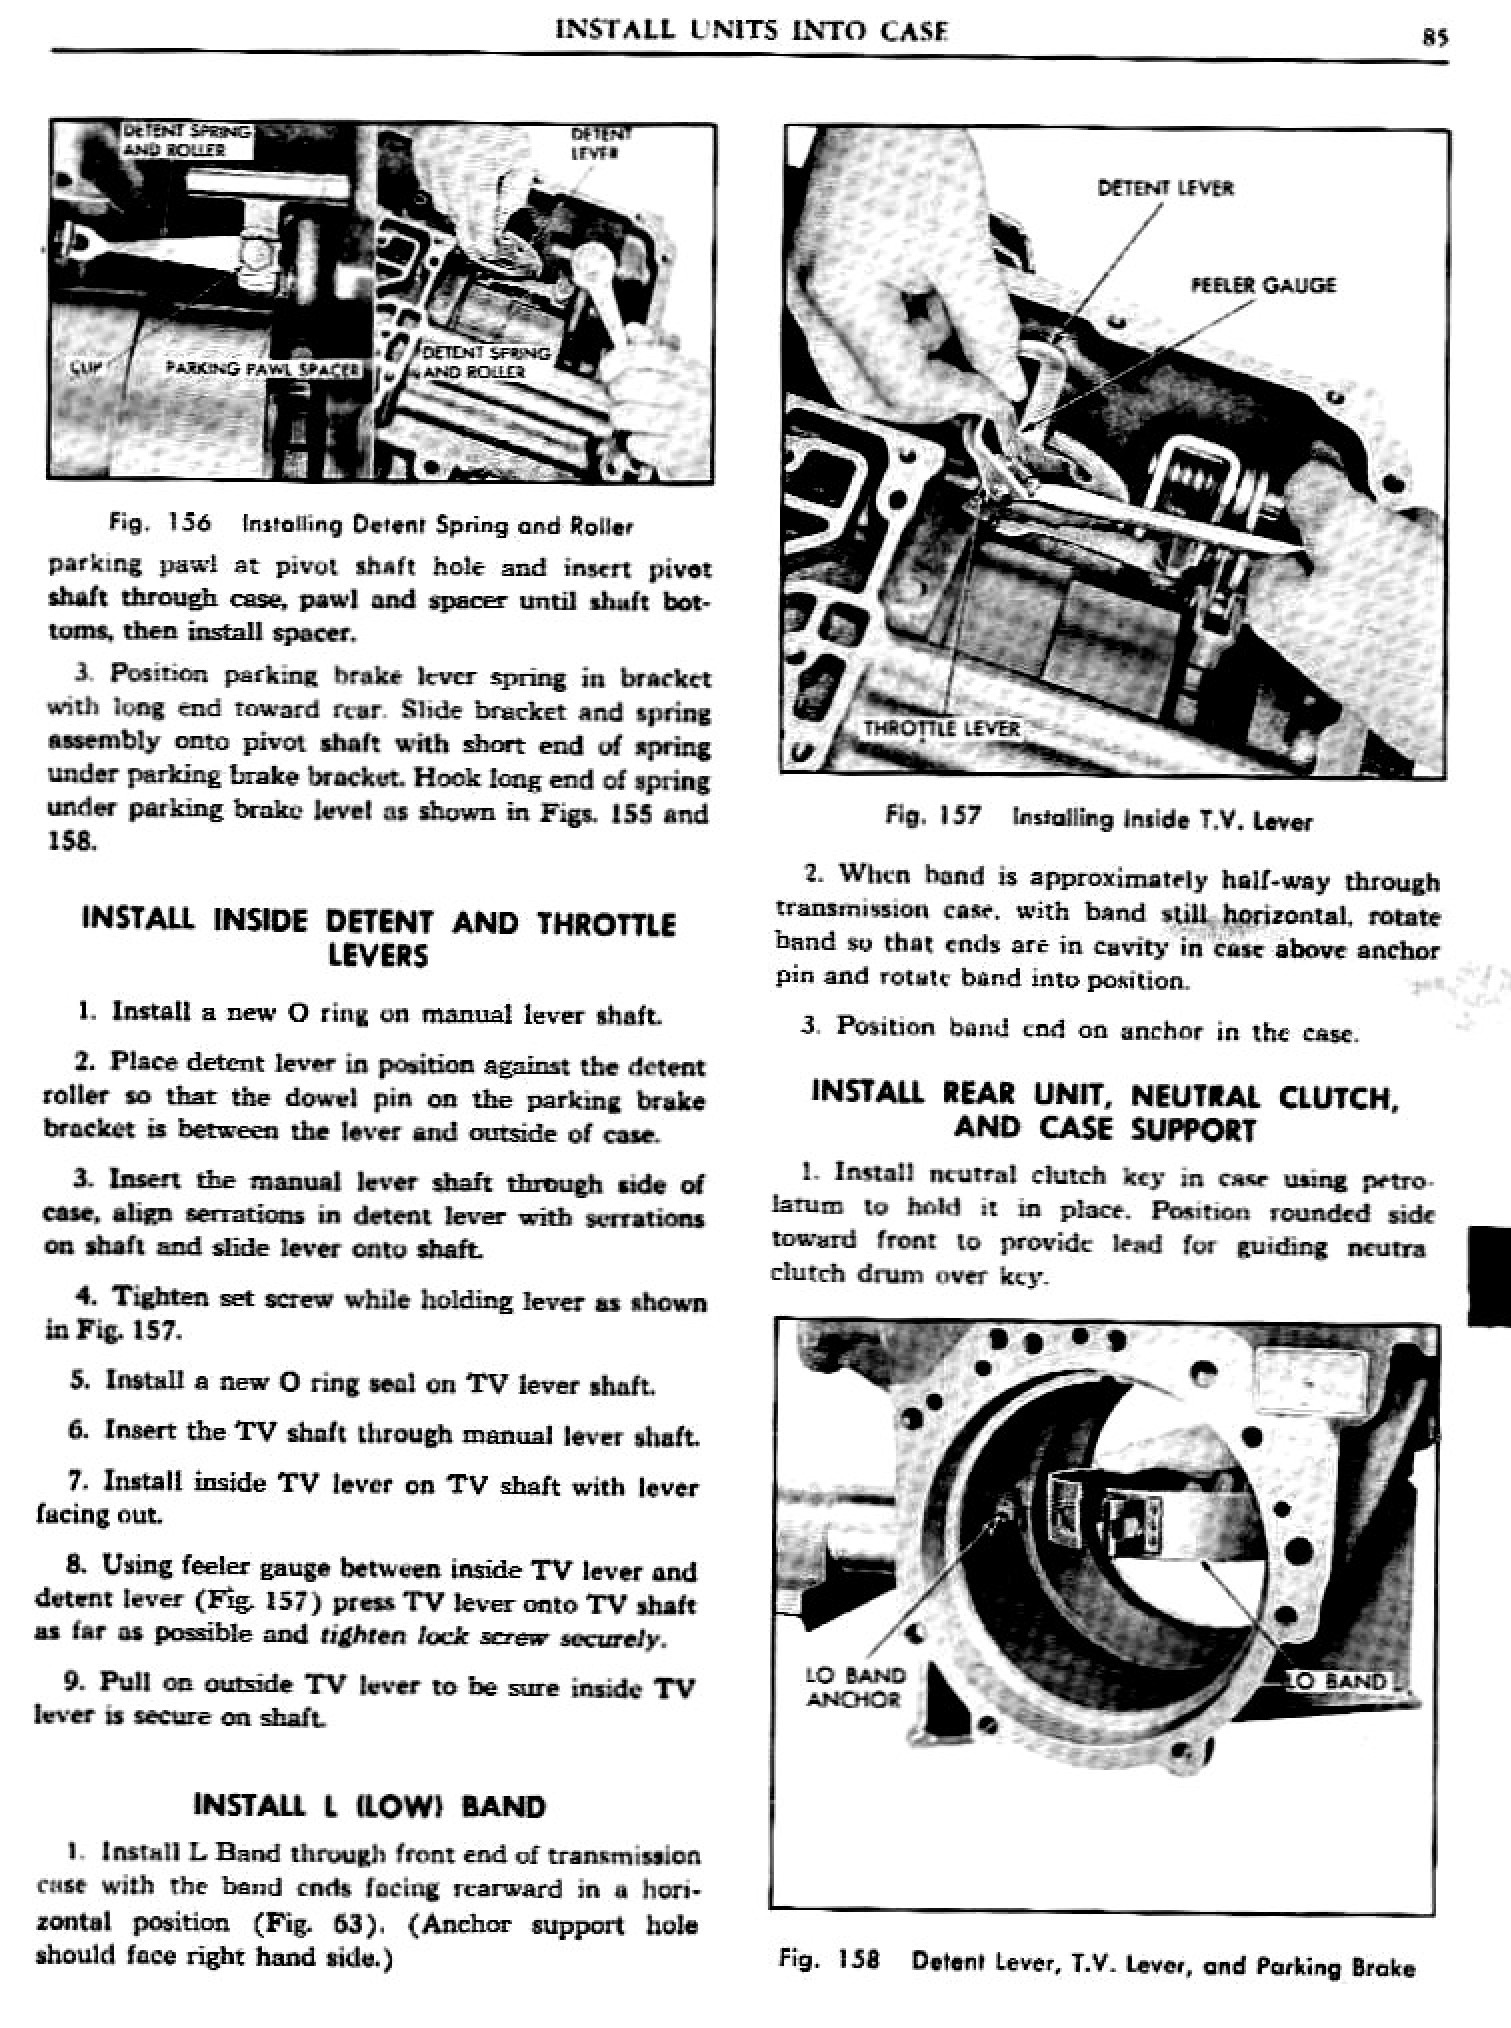 1960 Pontiac Shop Manual- Hydra-Matic Page 85 of 112